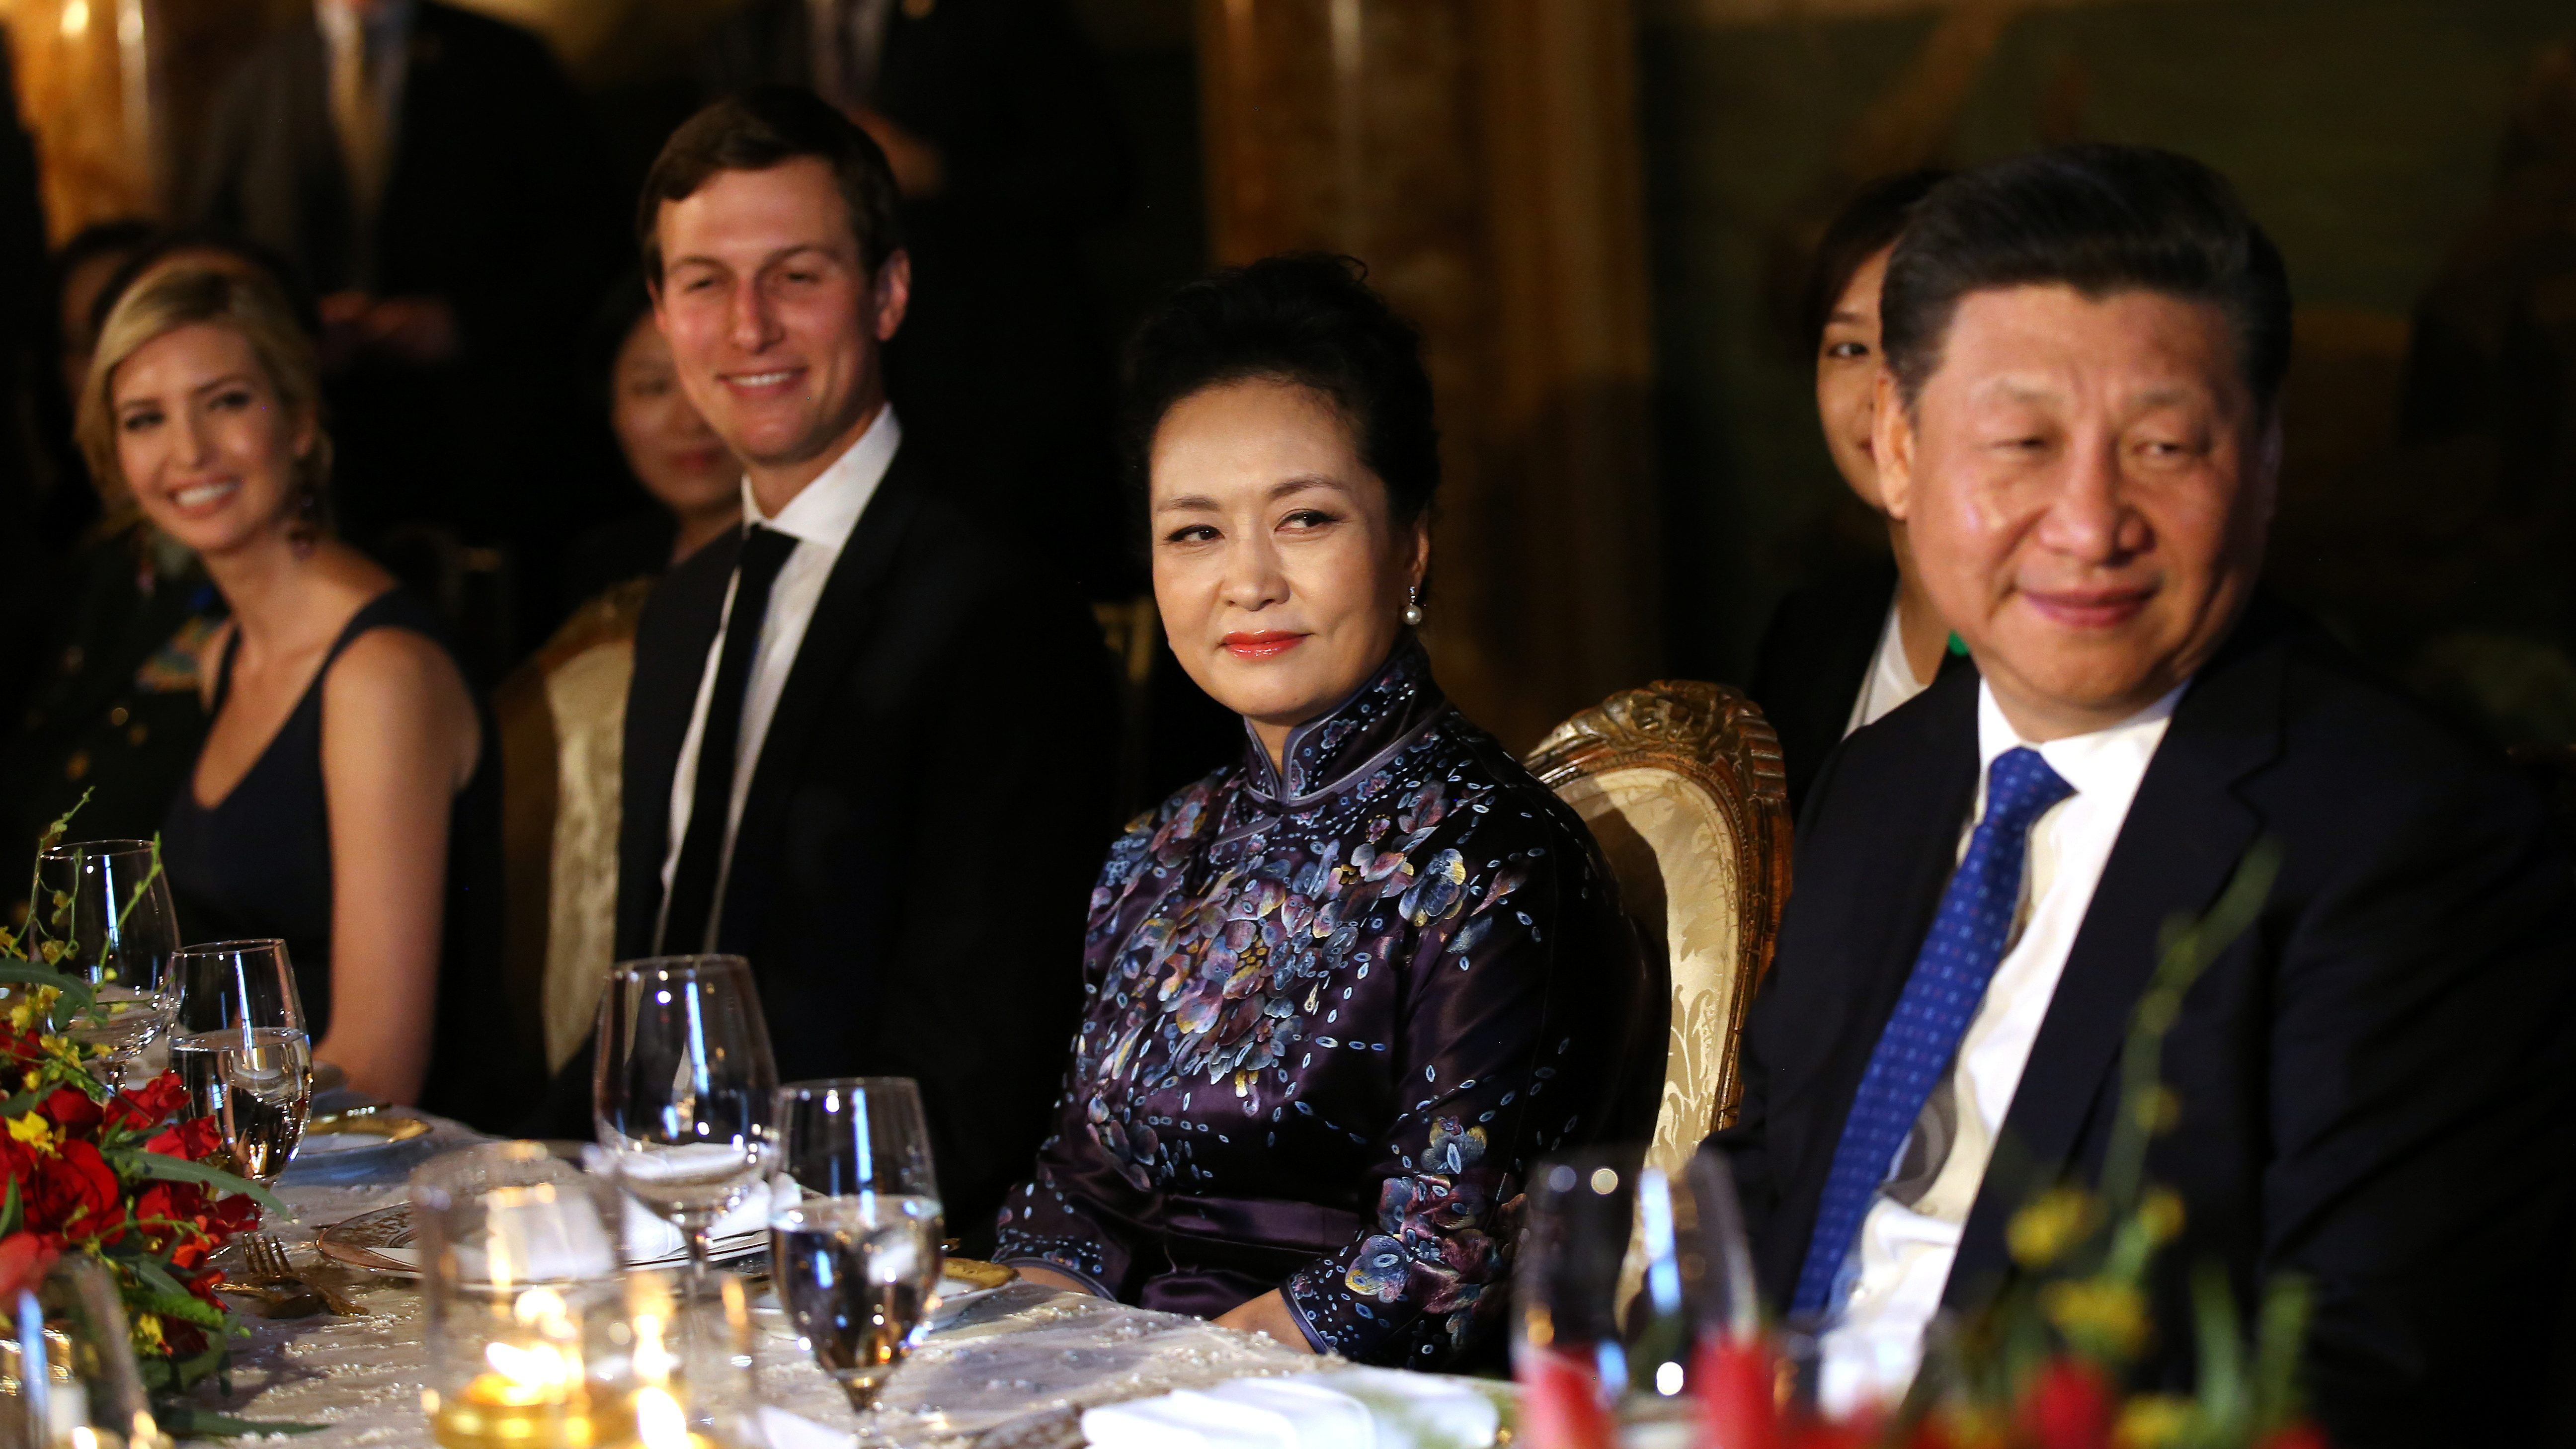 China's first lady Peng Liyuan looks at Chinese President Xi Jinping (R) as she sits next to Trump Senior Advisor Jared Kushner and Ivanka Trump (L), during a dinner at the start of a summit between U.S. President Donald Trump and Chinese President Xi at Trump's Mar-a-Lago estate in West Palm Beach, Florida, U.S. April 6, 2017.